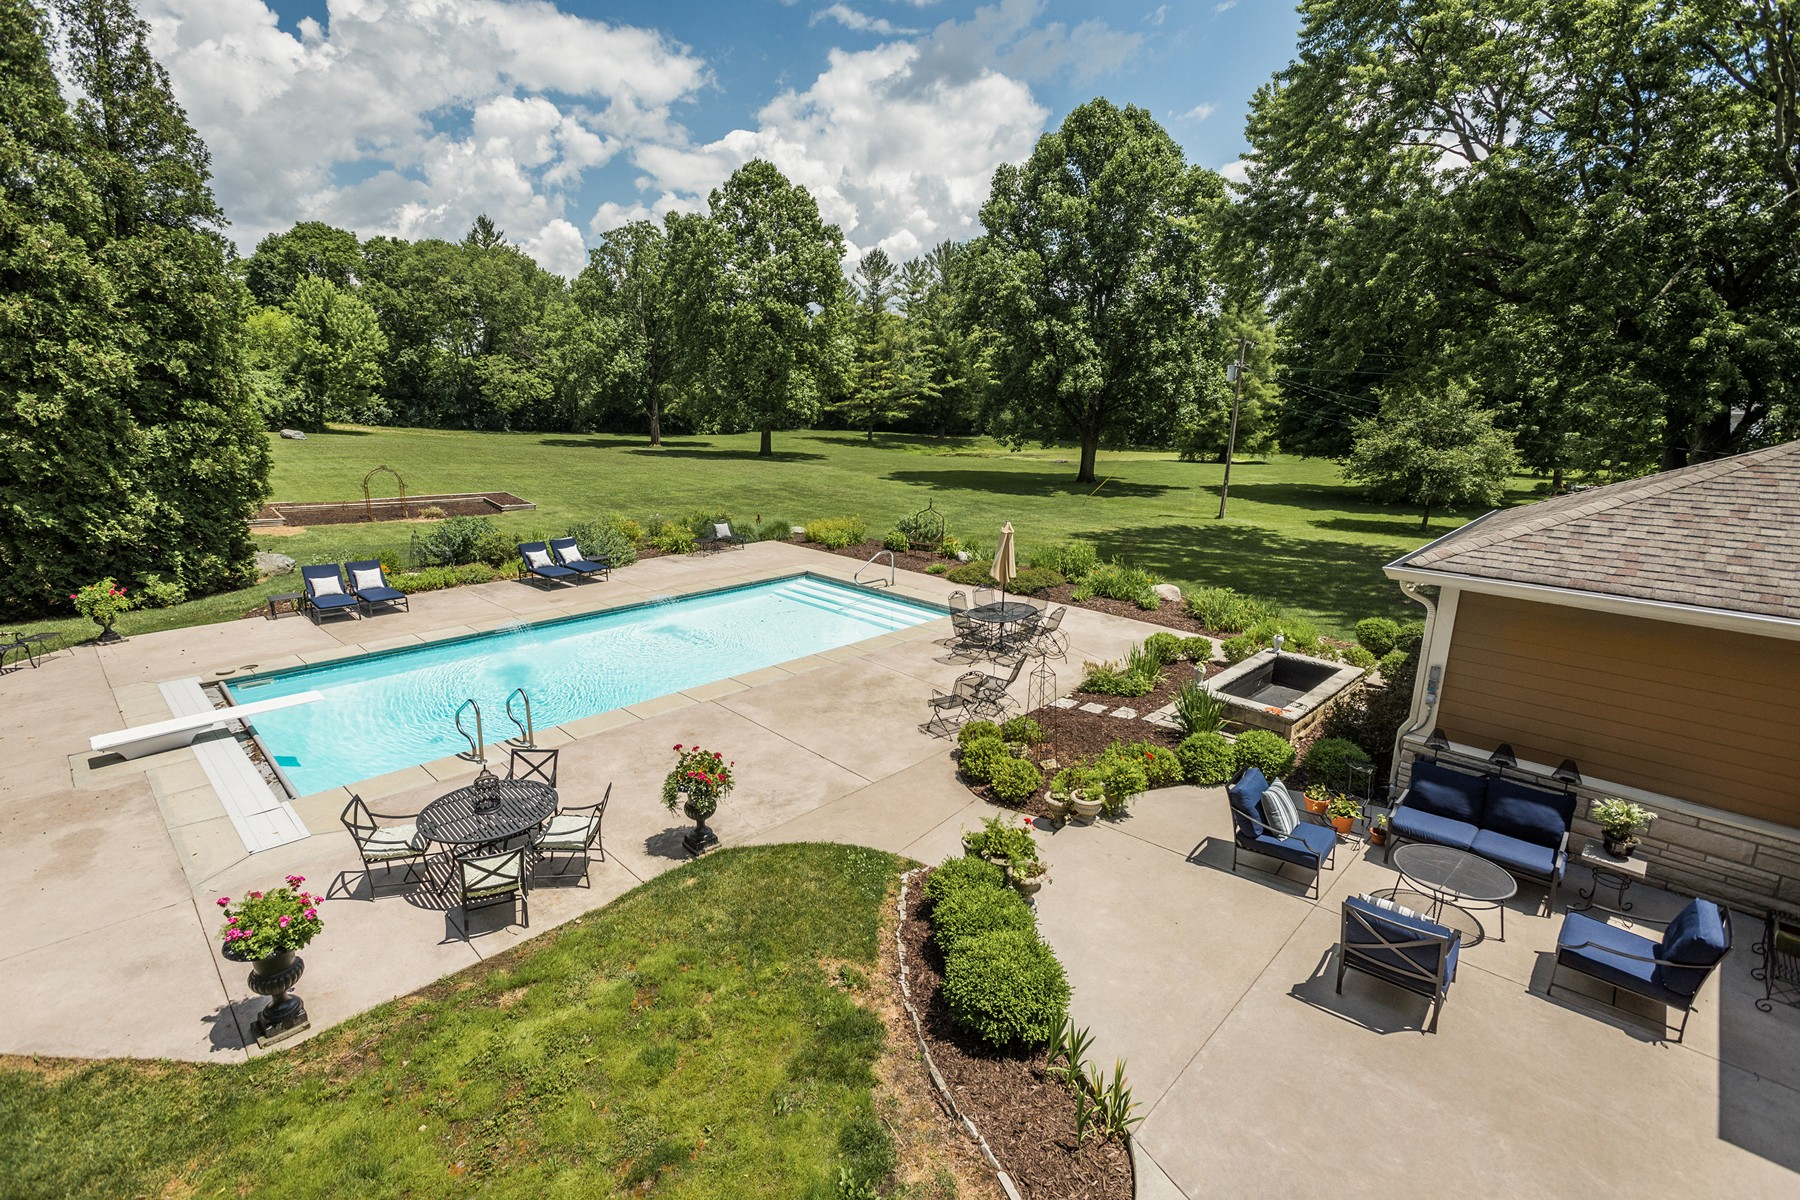 Single Family Home for Sale at Stunning Home Masterfully Updated 1580 W. Main Street Carmel, Indiana 46032 United States